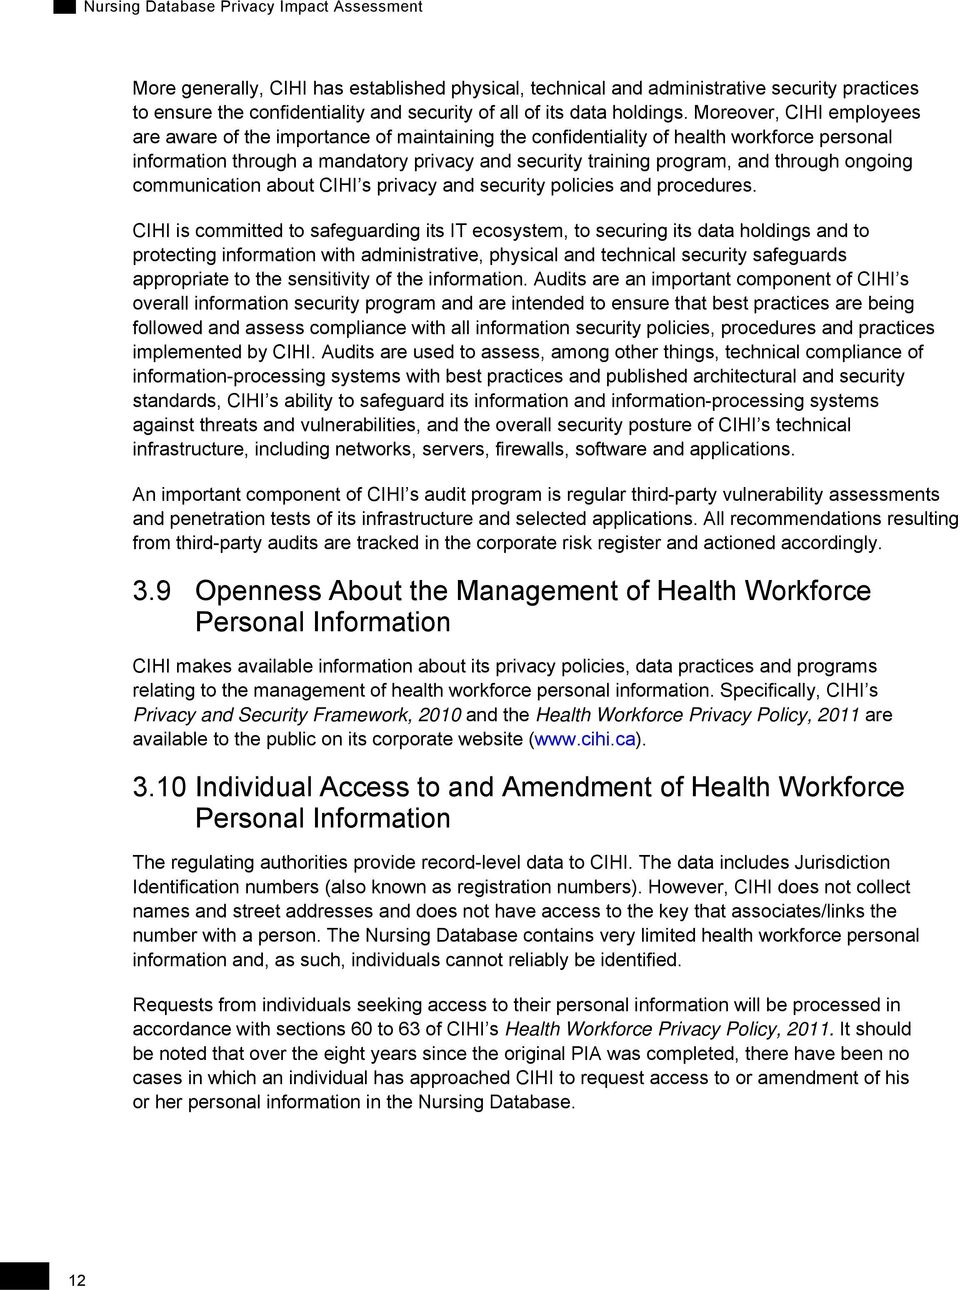 ongoing communication about CIHI s privacy and security policies and procedures.